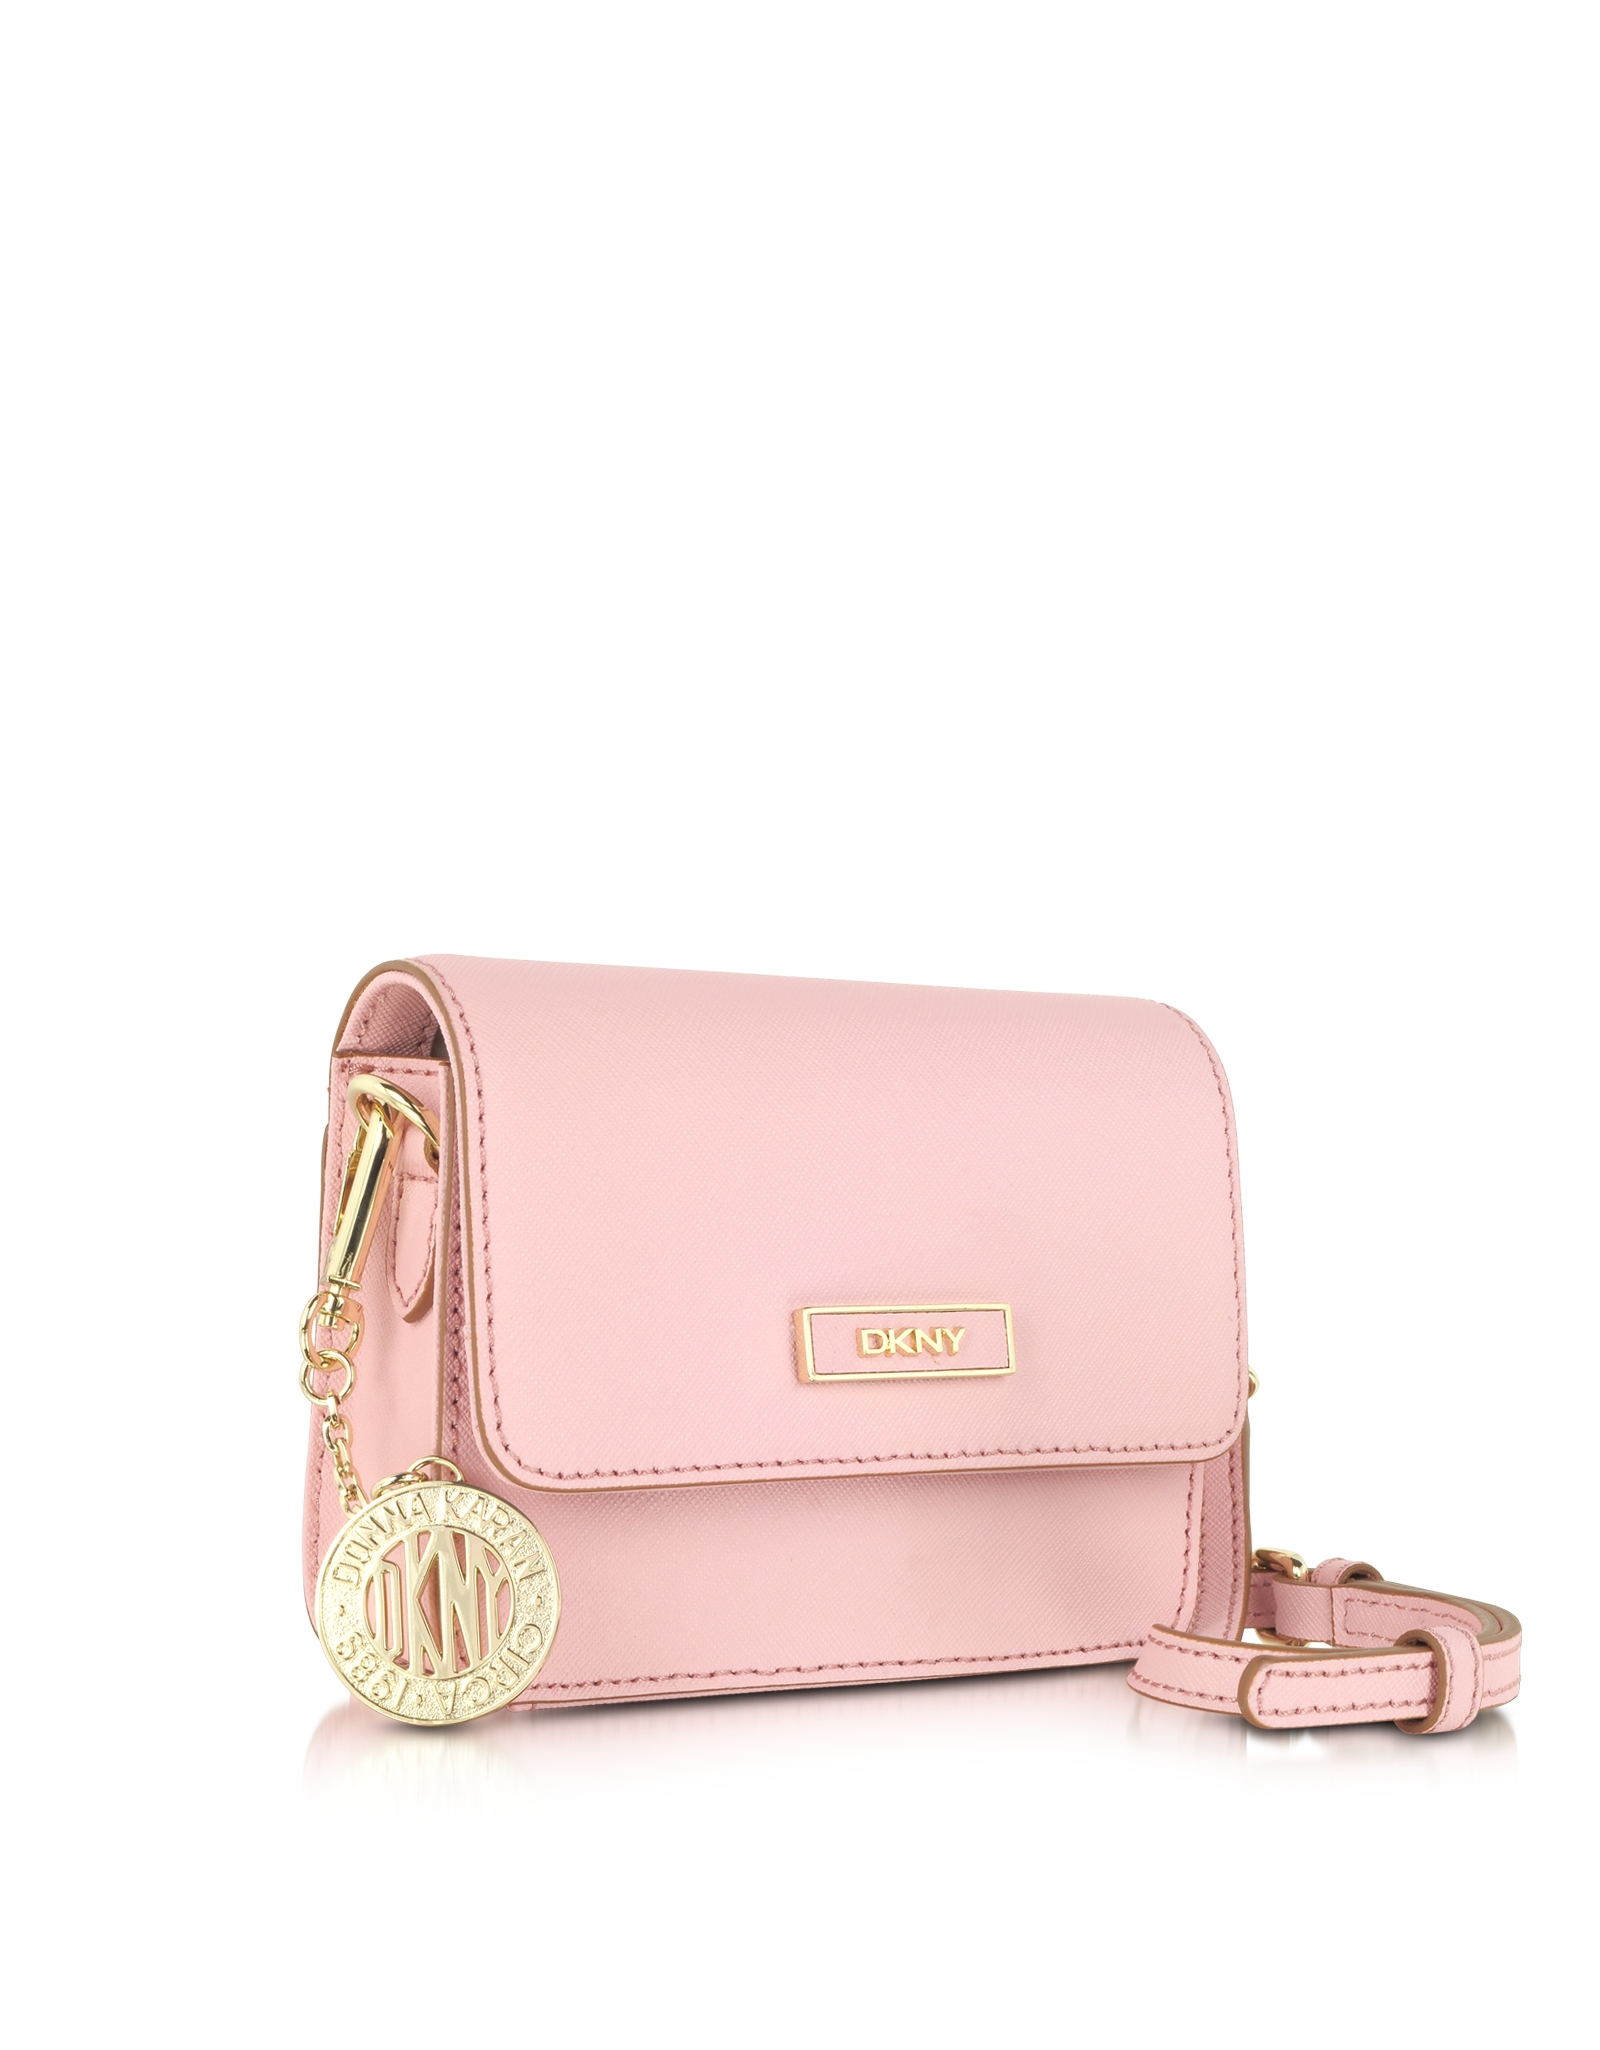 Dkny Bryant Park Mini Pink Saffiano Leather Crossbody Bag in ...